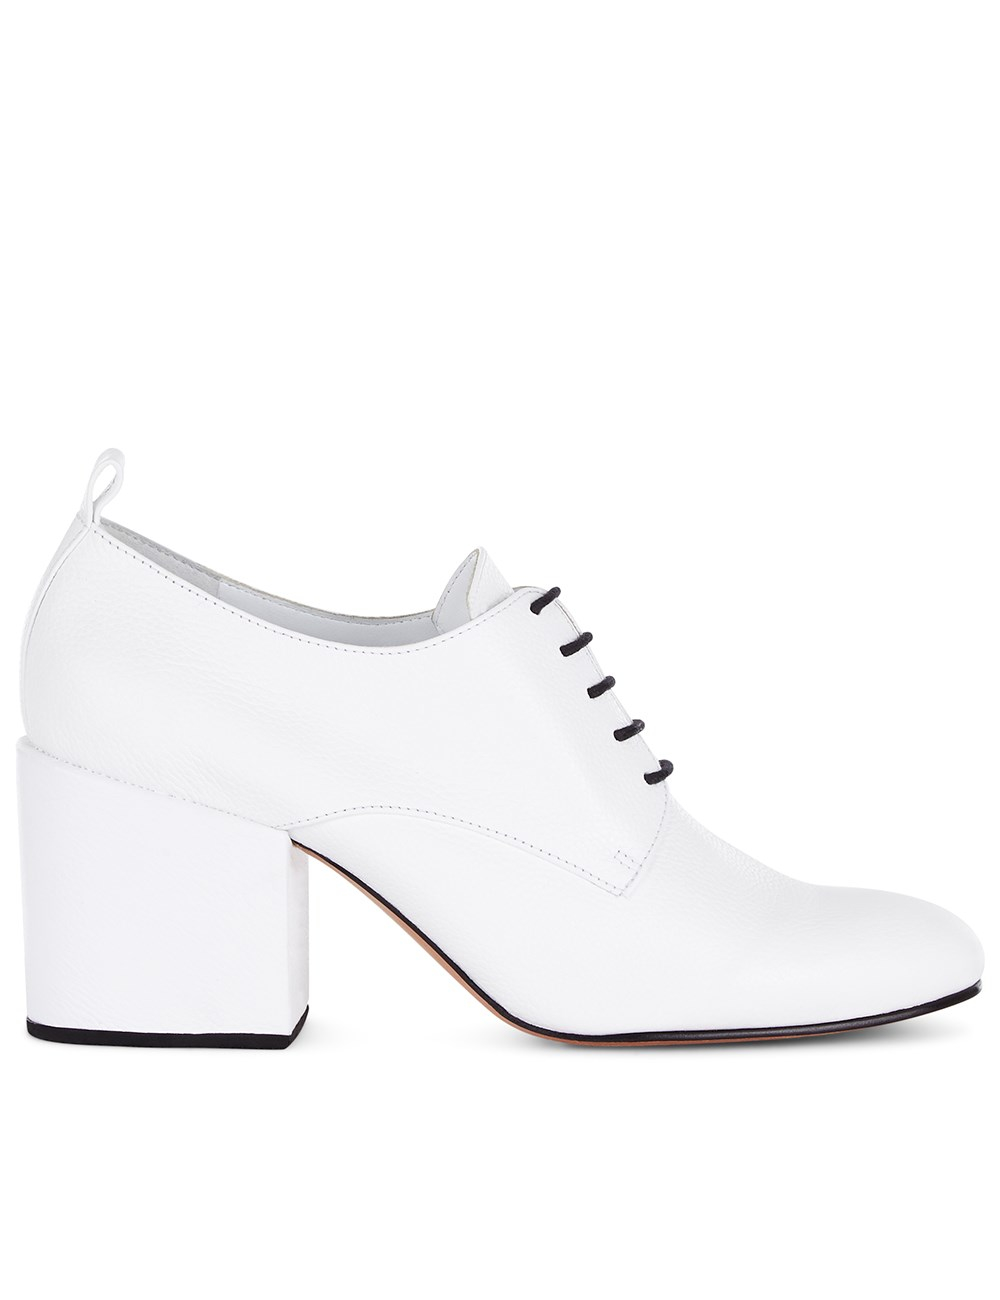 comey white leather block heel shoes in white lyst